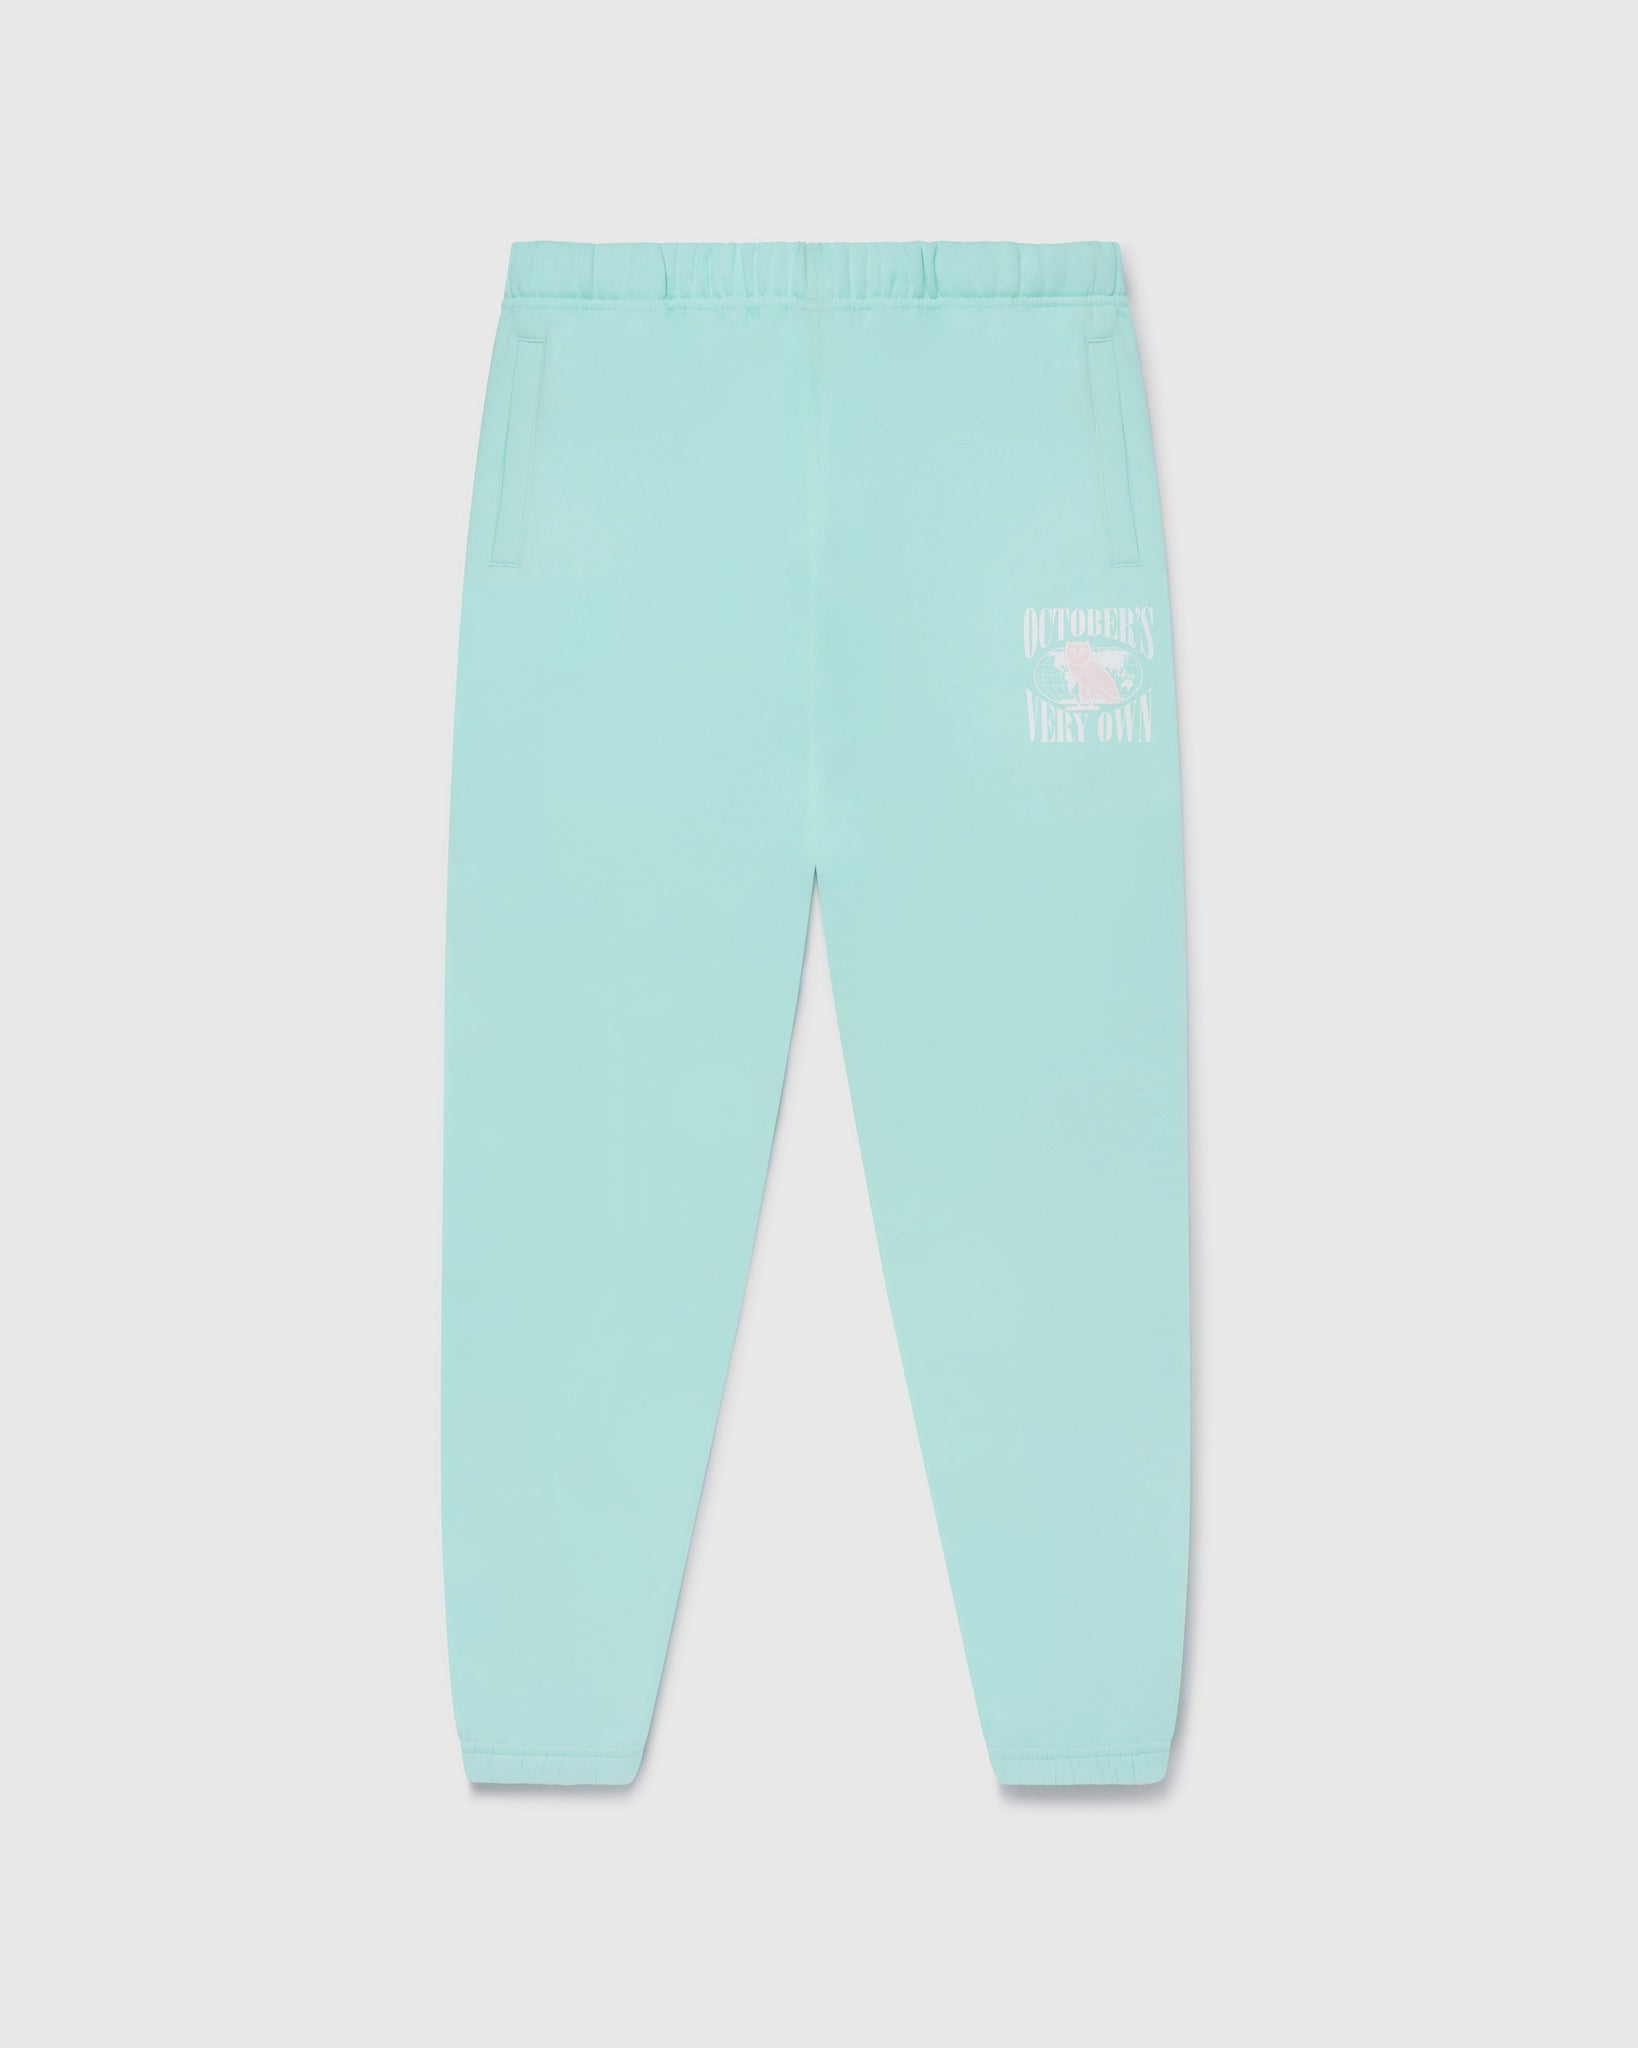 WORLD TOUR SWEATPANT - AQUA BLUE IMAGE #1